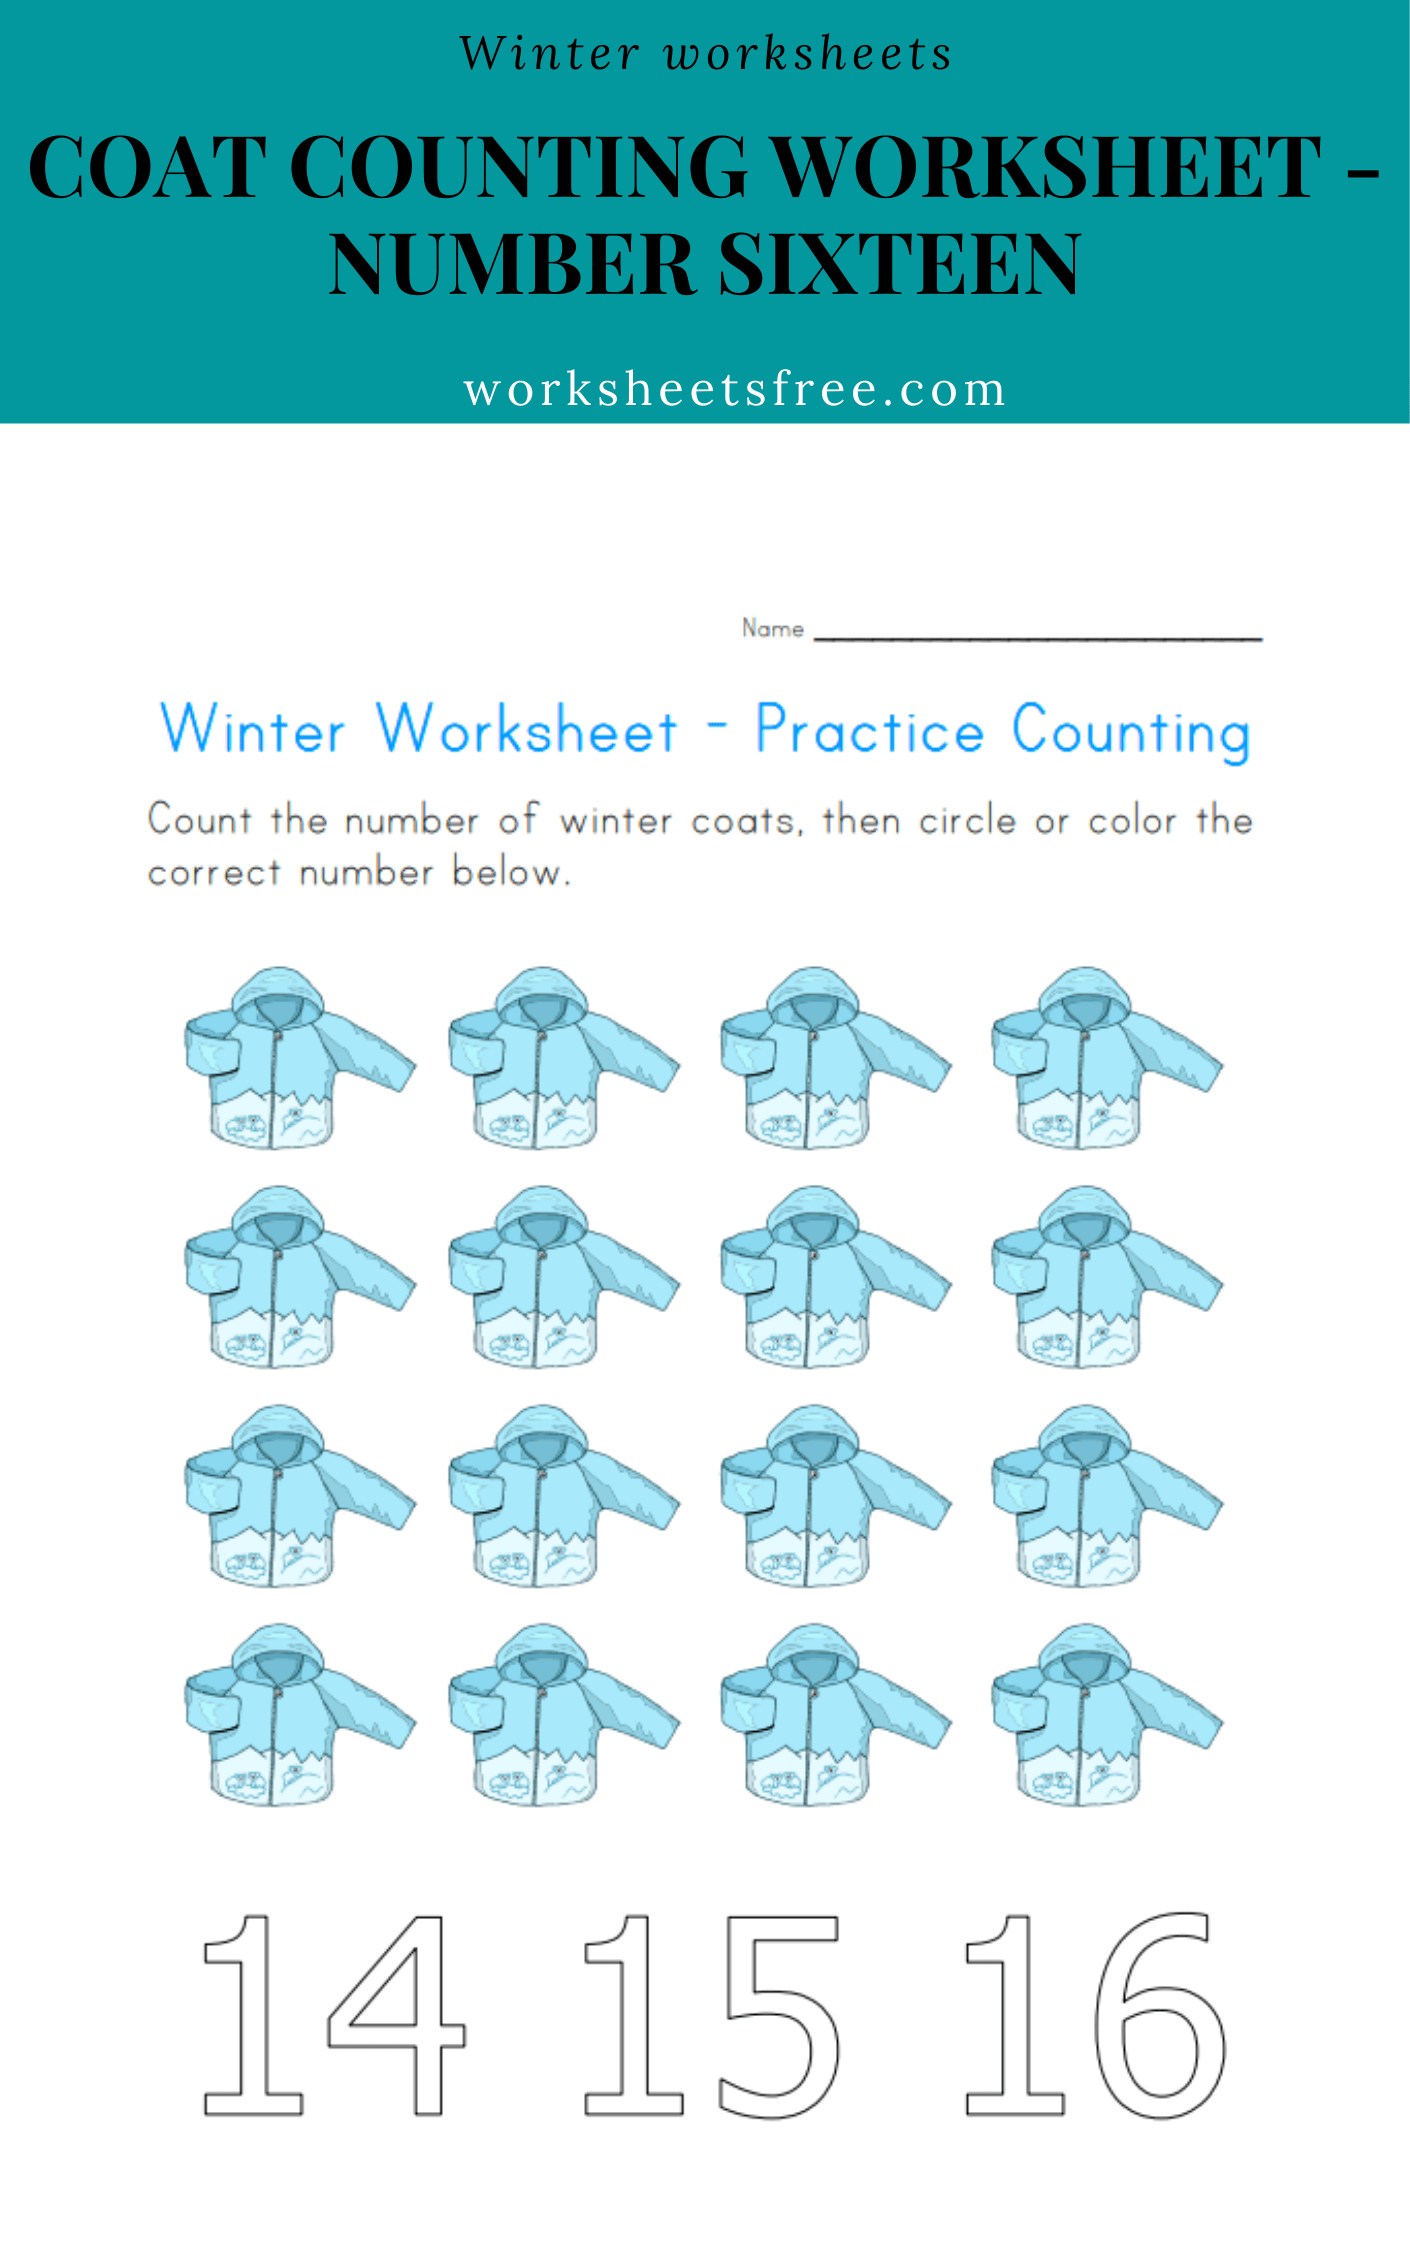 Coat Counting Worksheet Number Sixteen